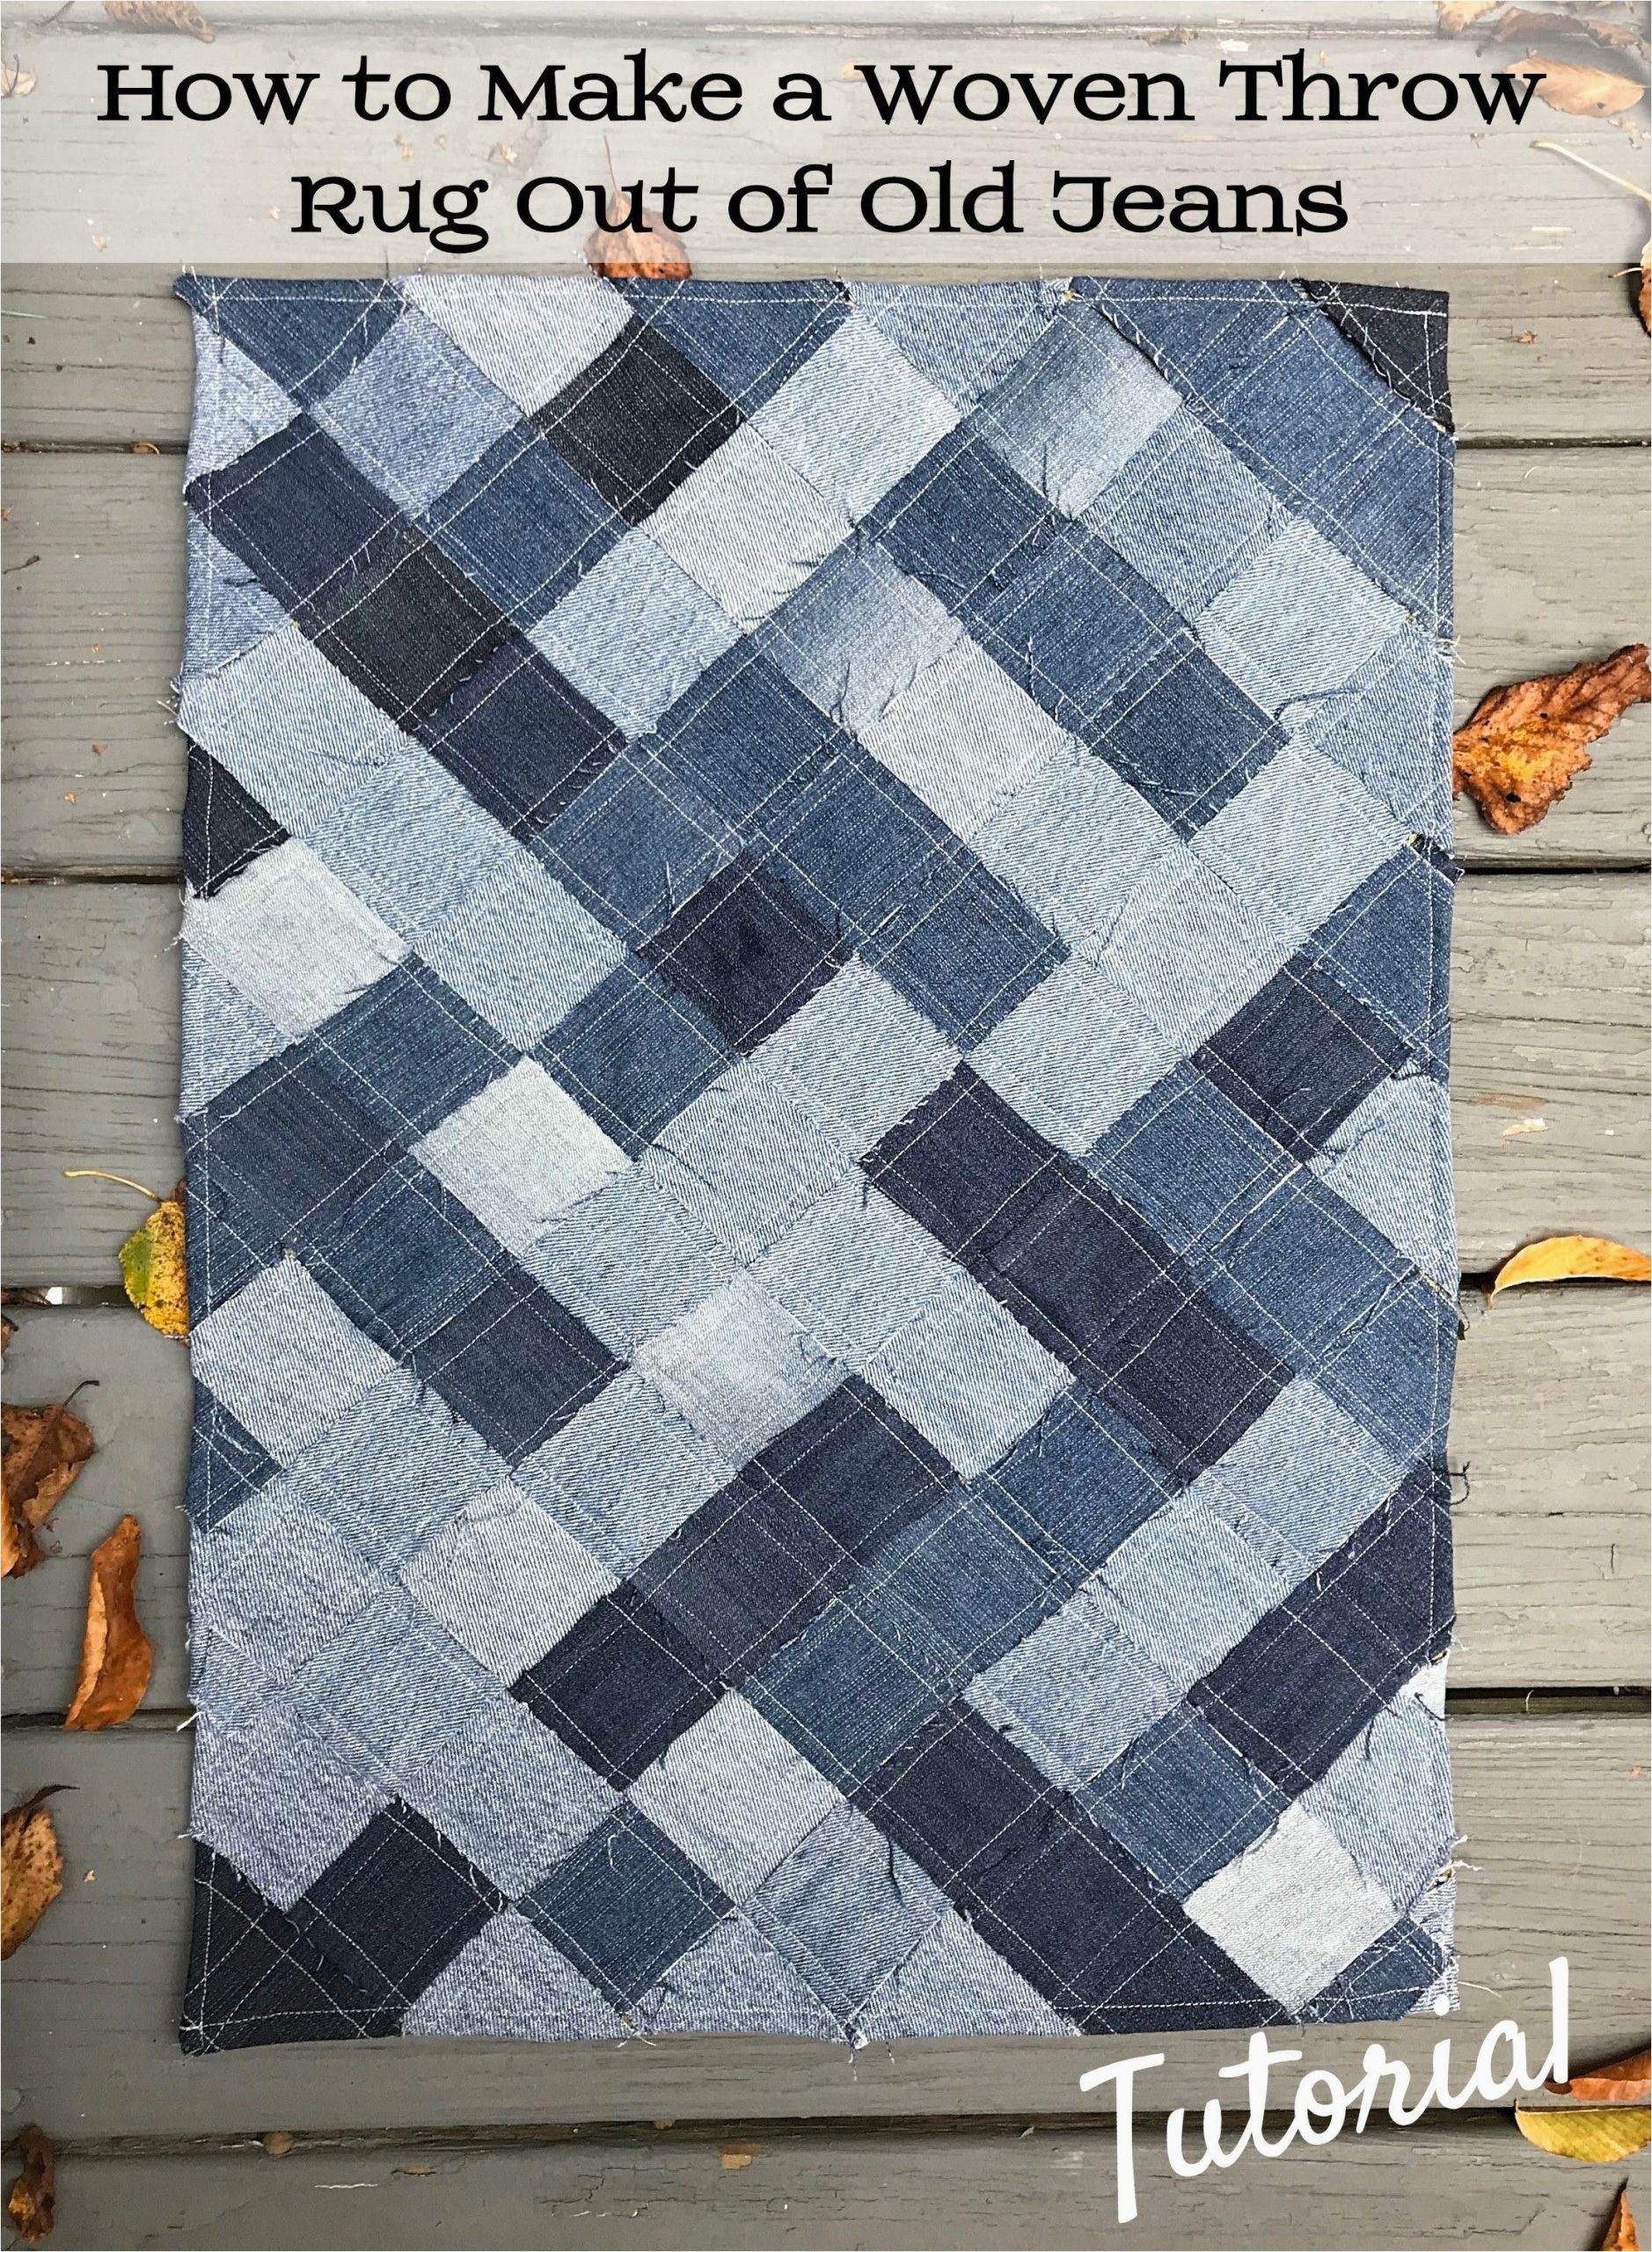 s imagesymedia content age MTc0NDc5NDI3NjIxNjI3MjQw how to make a woven throw rug out of recycled denim jeans